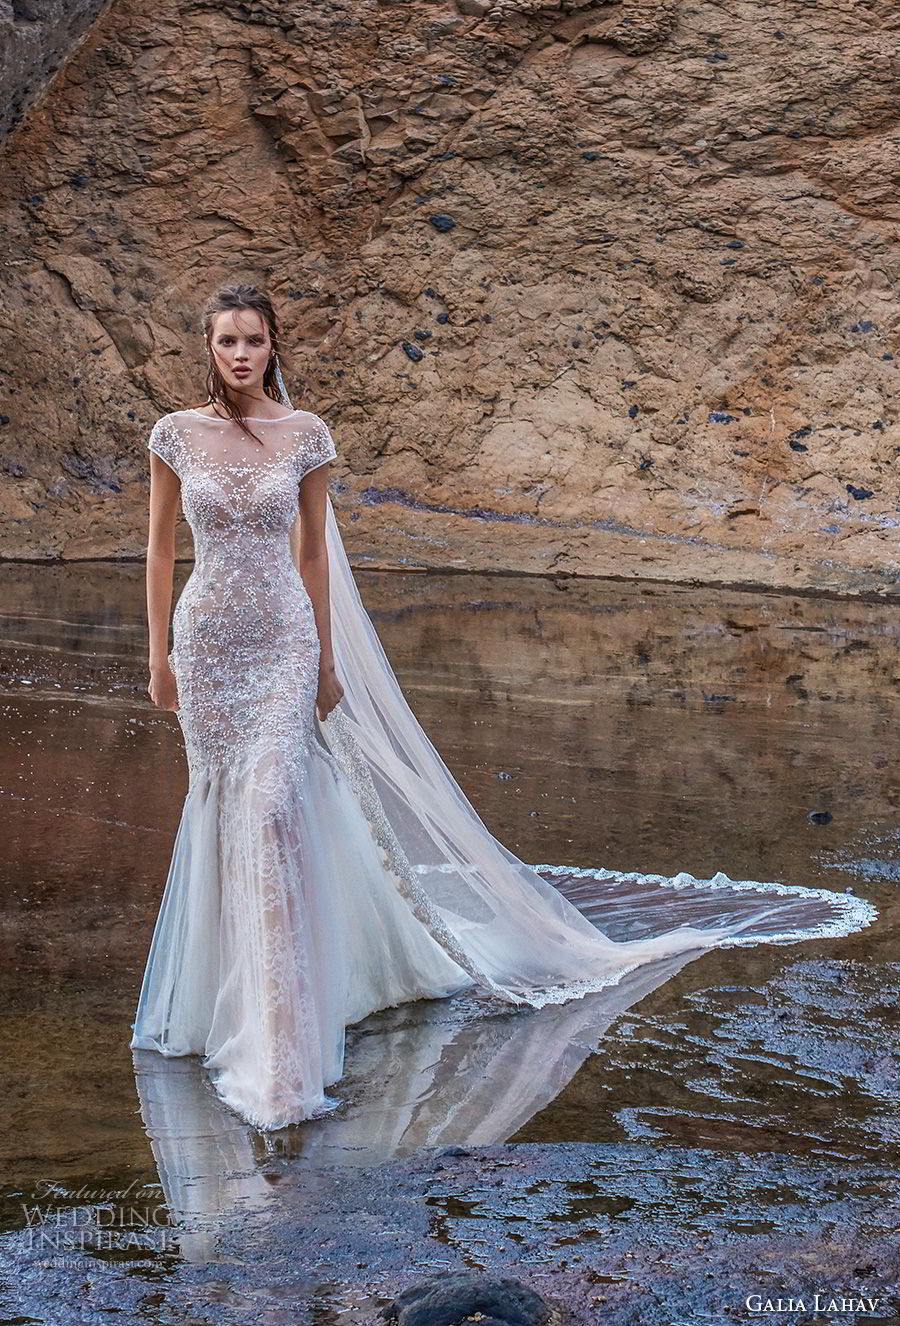 galia lahav gala 2018 bridal cap sleeves illusion bateau neck full embellishment elegant fit and flare wedding dress open back chapel train (6) mv